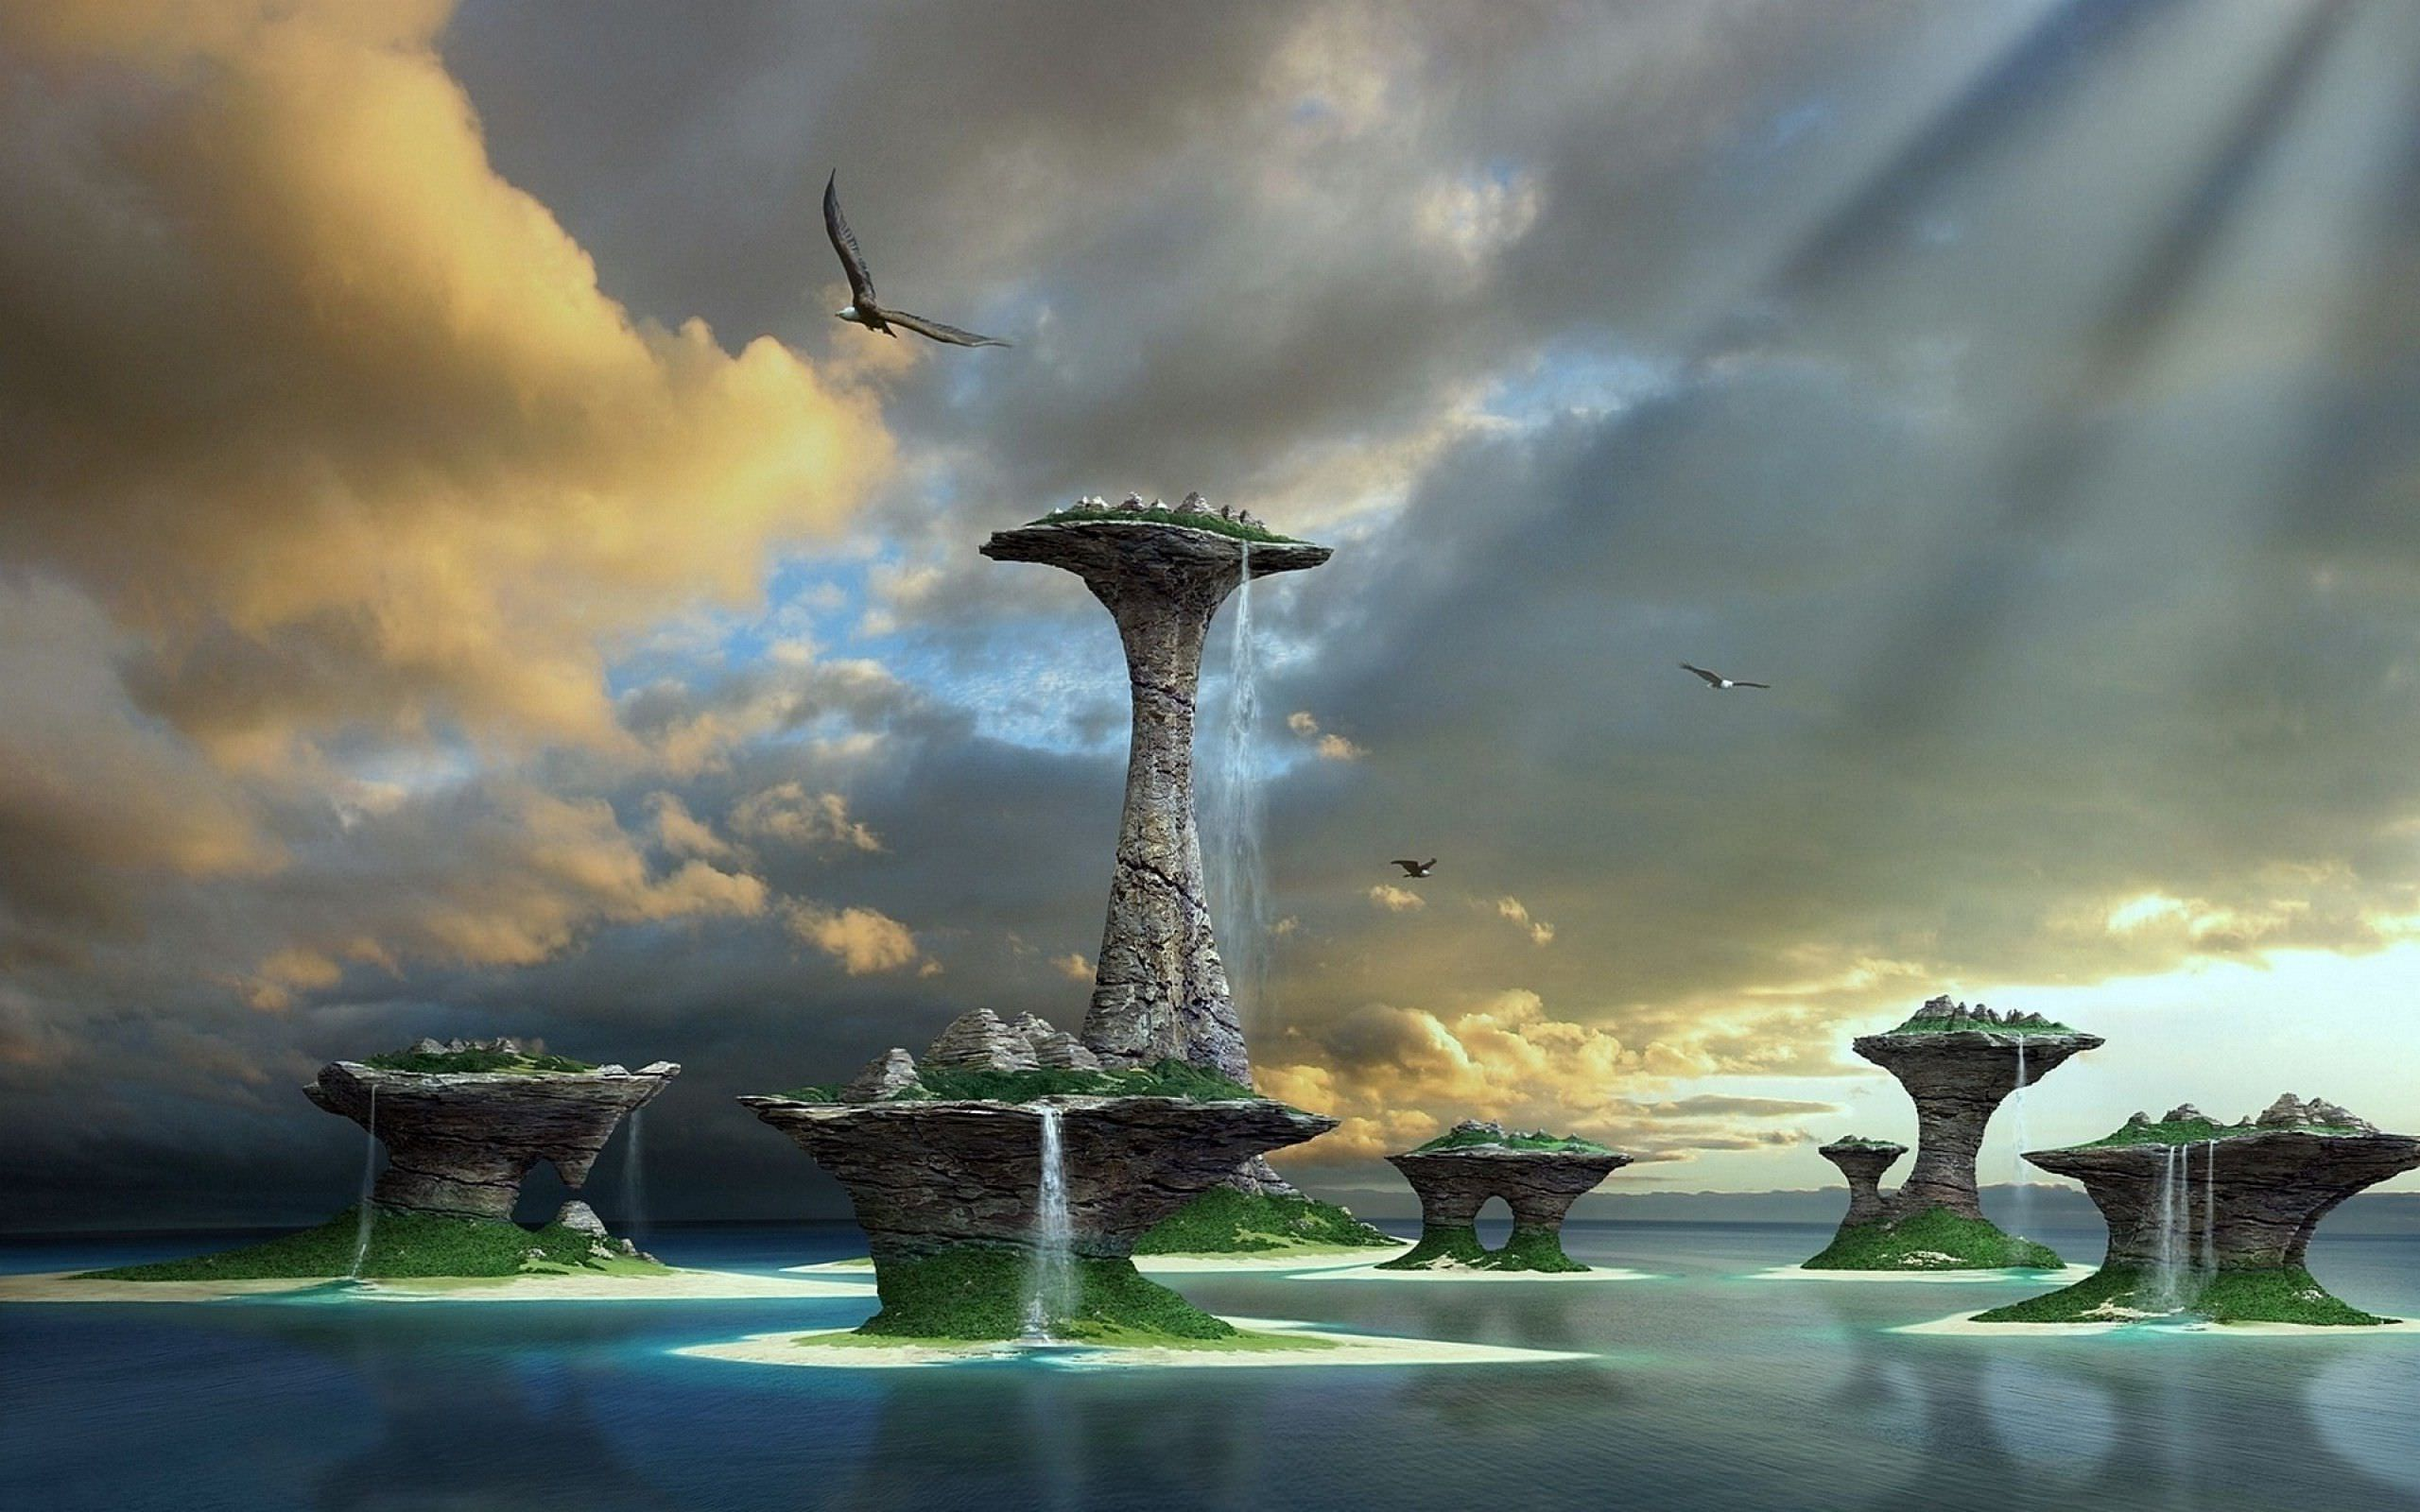 Window 8 3D Fantasy Lake Wallpaper